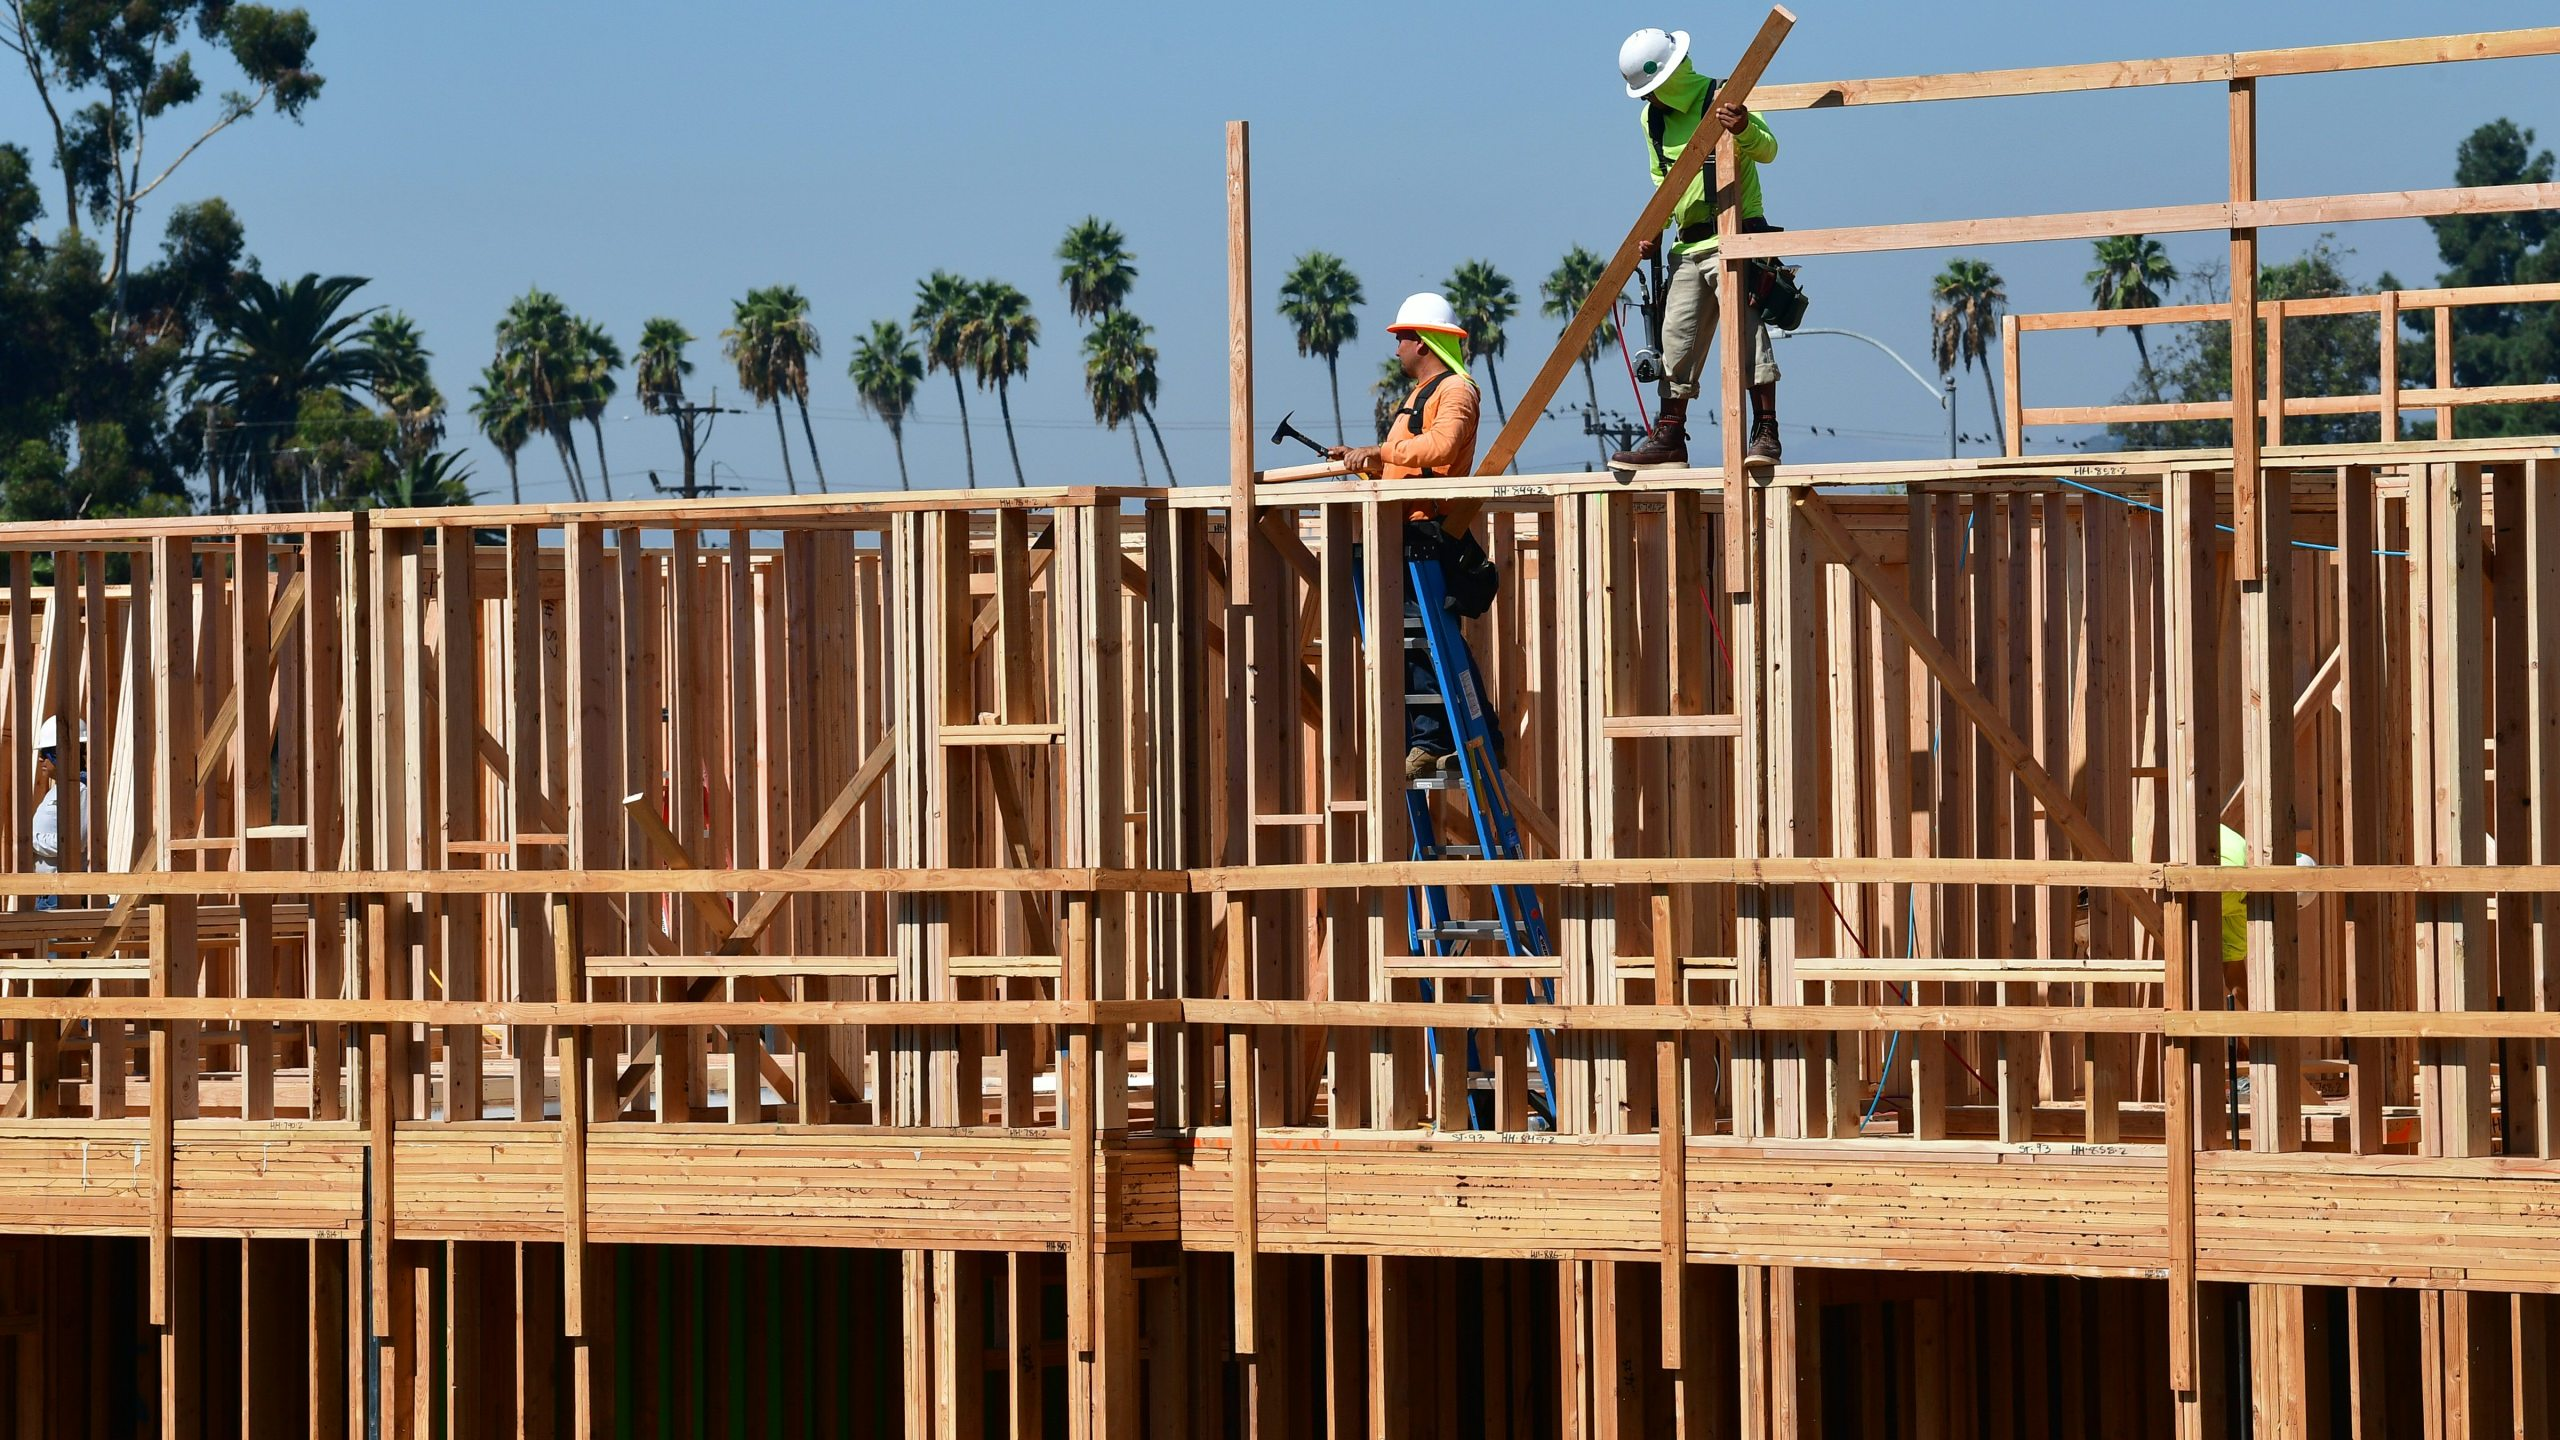 Construction workers are seen on the site of a new building in Los Angeles, California on Oct. 8, 2019. (Credit: Frederic J. Brown /AFP via Getty Images)